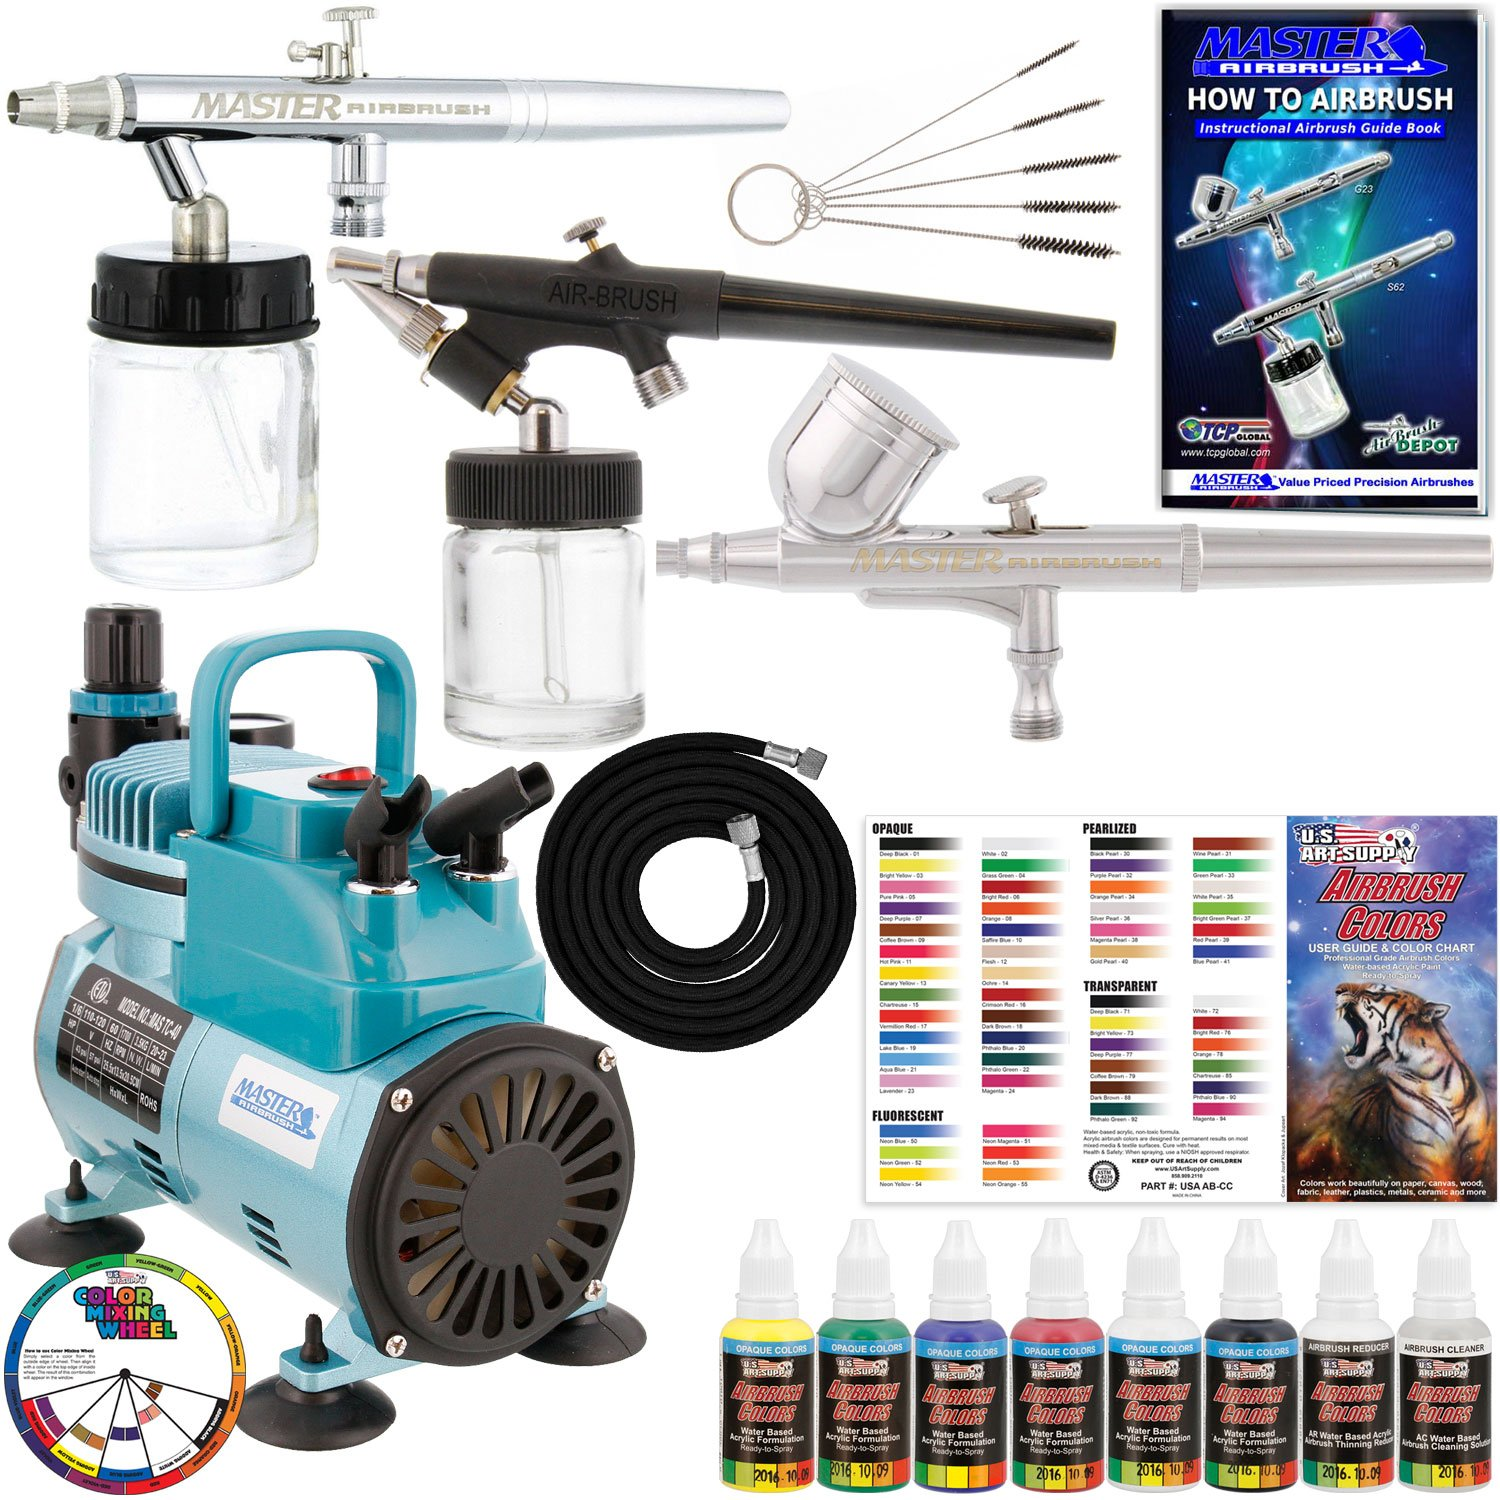 Complete Professional Master Airbrush Multi-Purpose Airbrushing System with 3 Master Airbrushes, U.S. Art Supply Airbrush Paint Kit with 6 Primary Colors, Color Mixing Wheel, Color Guide - Airbrush Models: G22 Gravity Feed, S68 Siphon Feed, E91 Siphon Fee